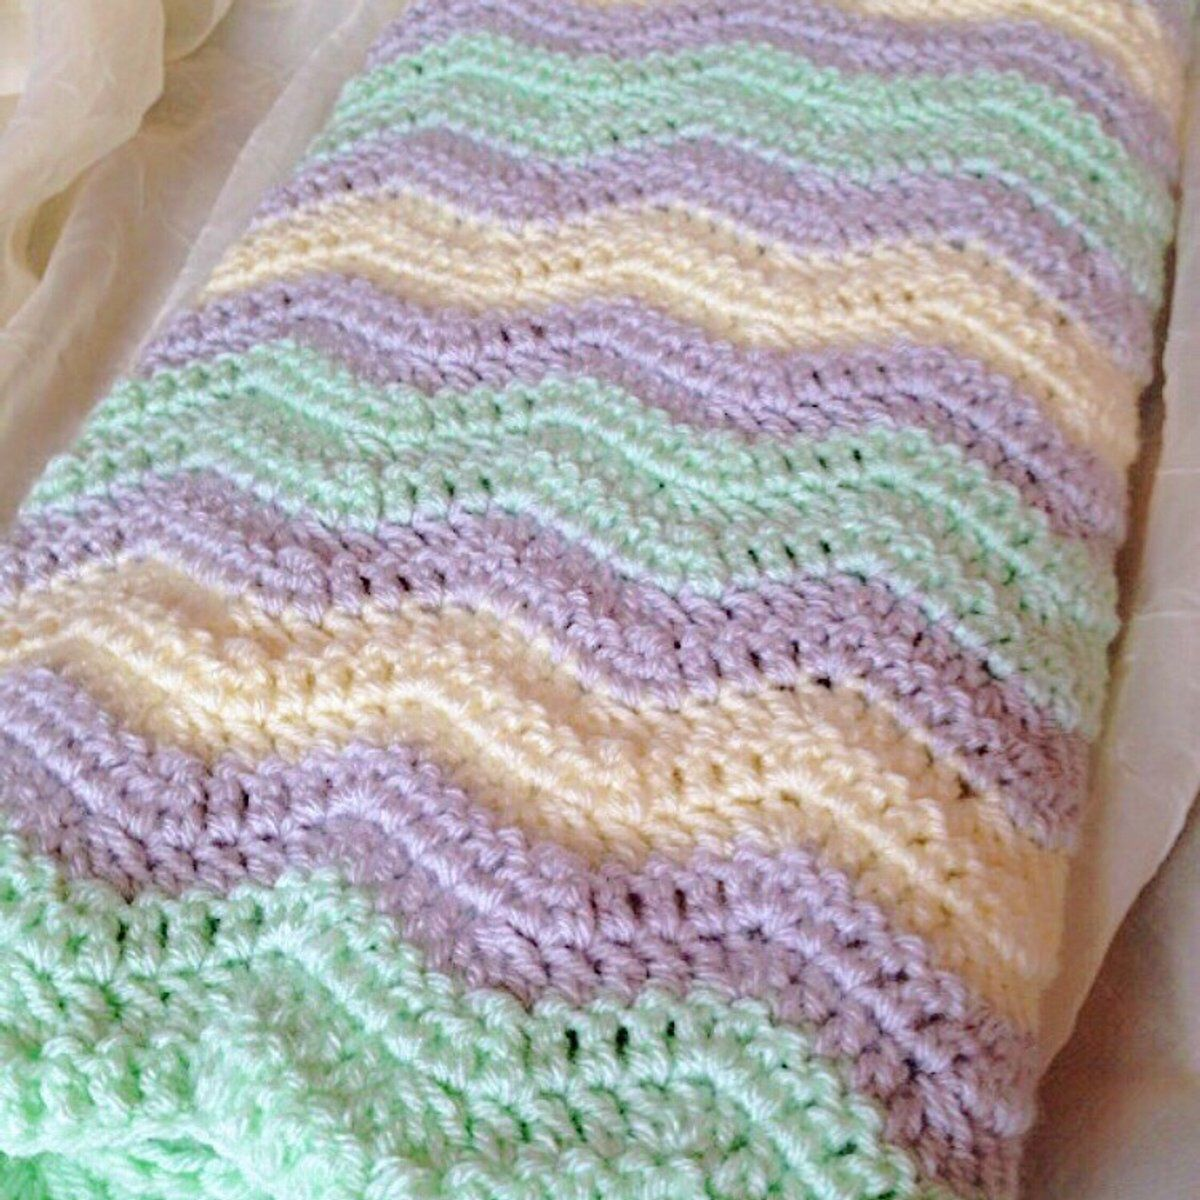 BABY SHOWER GIFT Hand Crochet Baby Blanket Teal Greens and Lavender